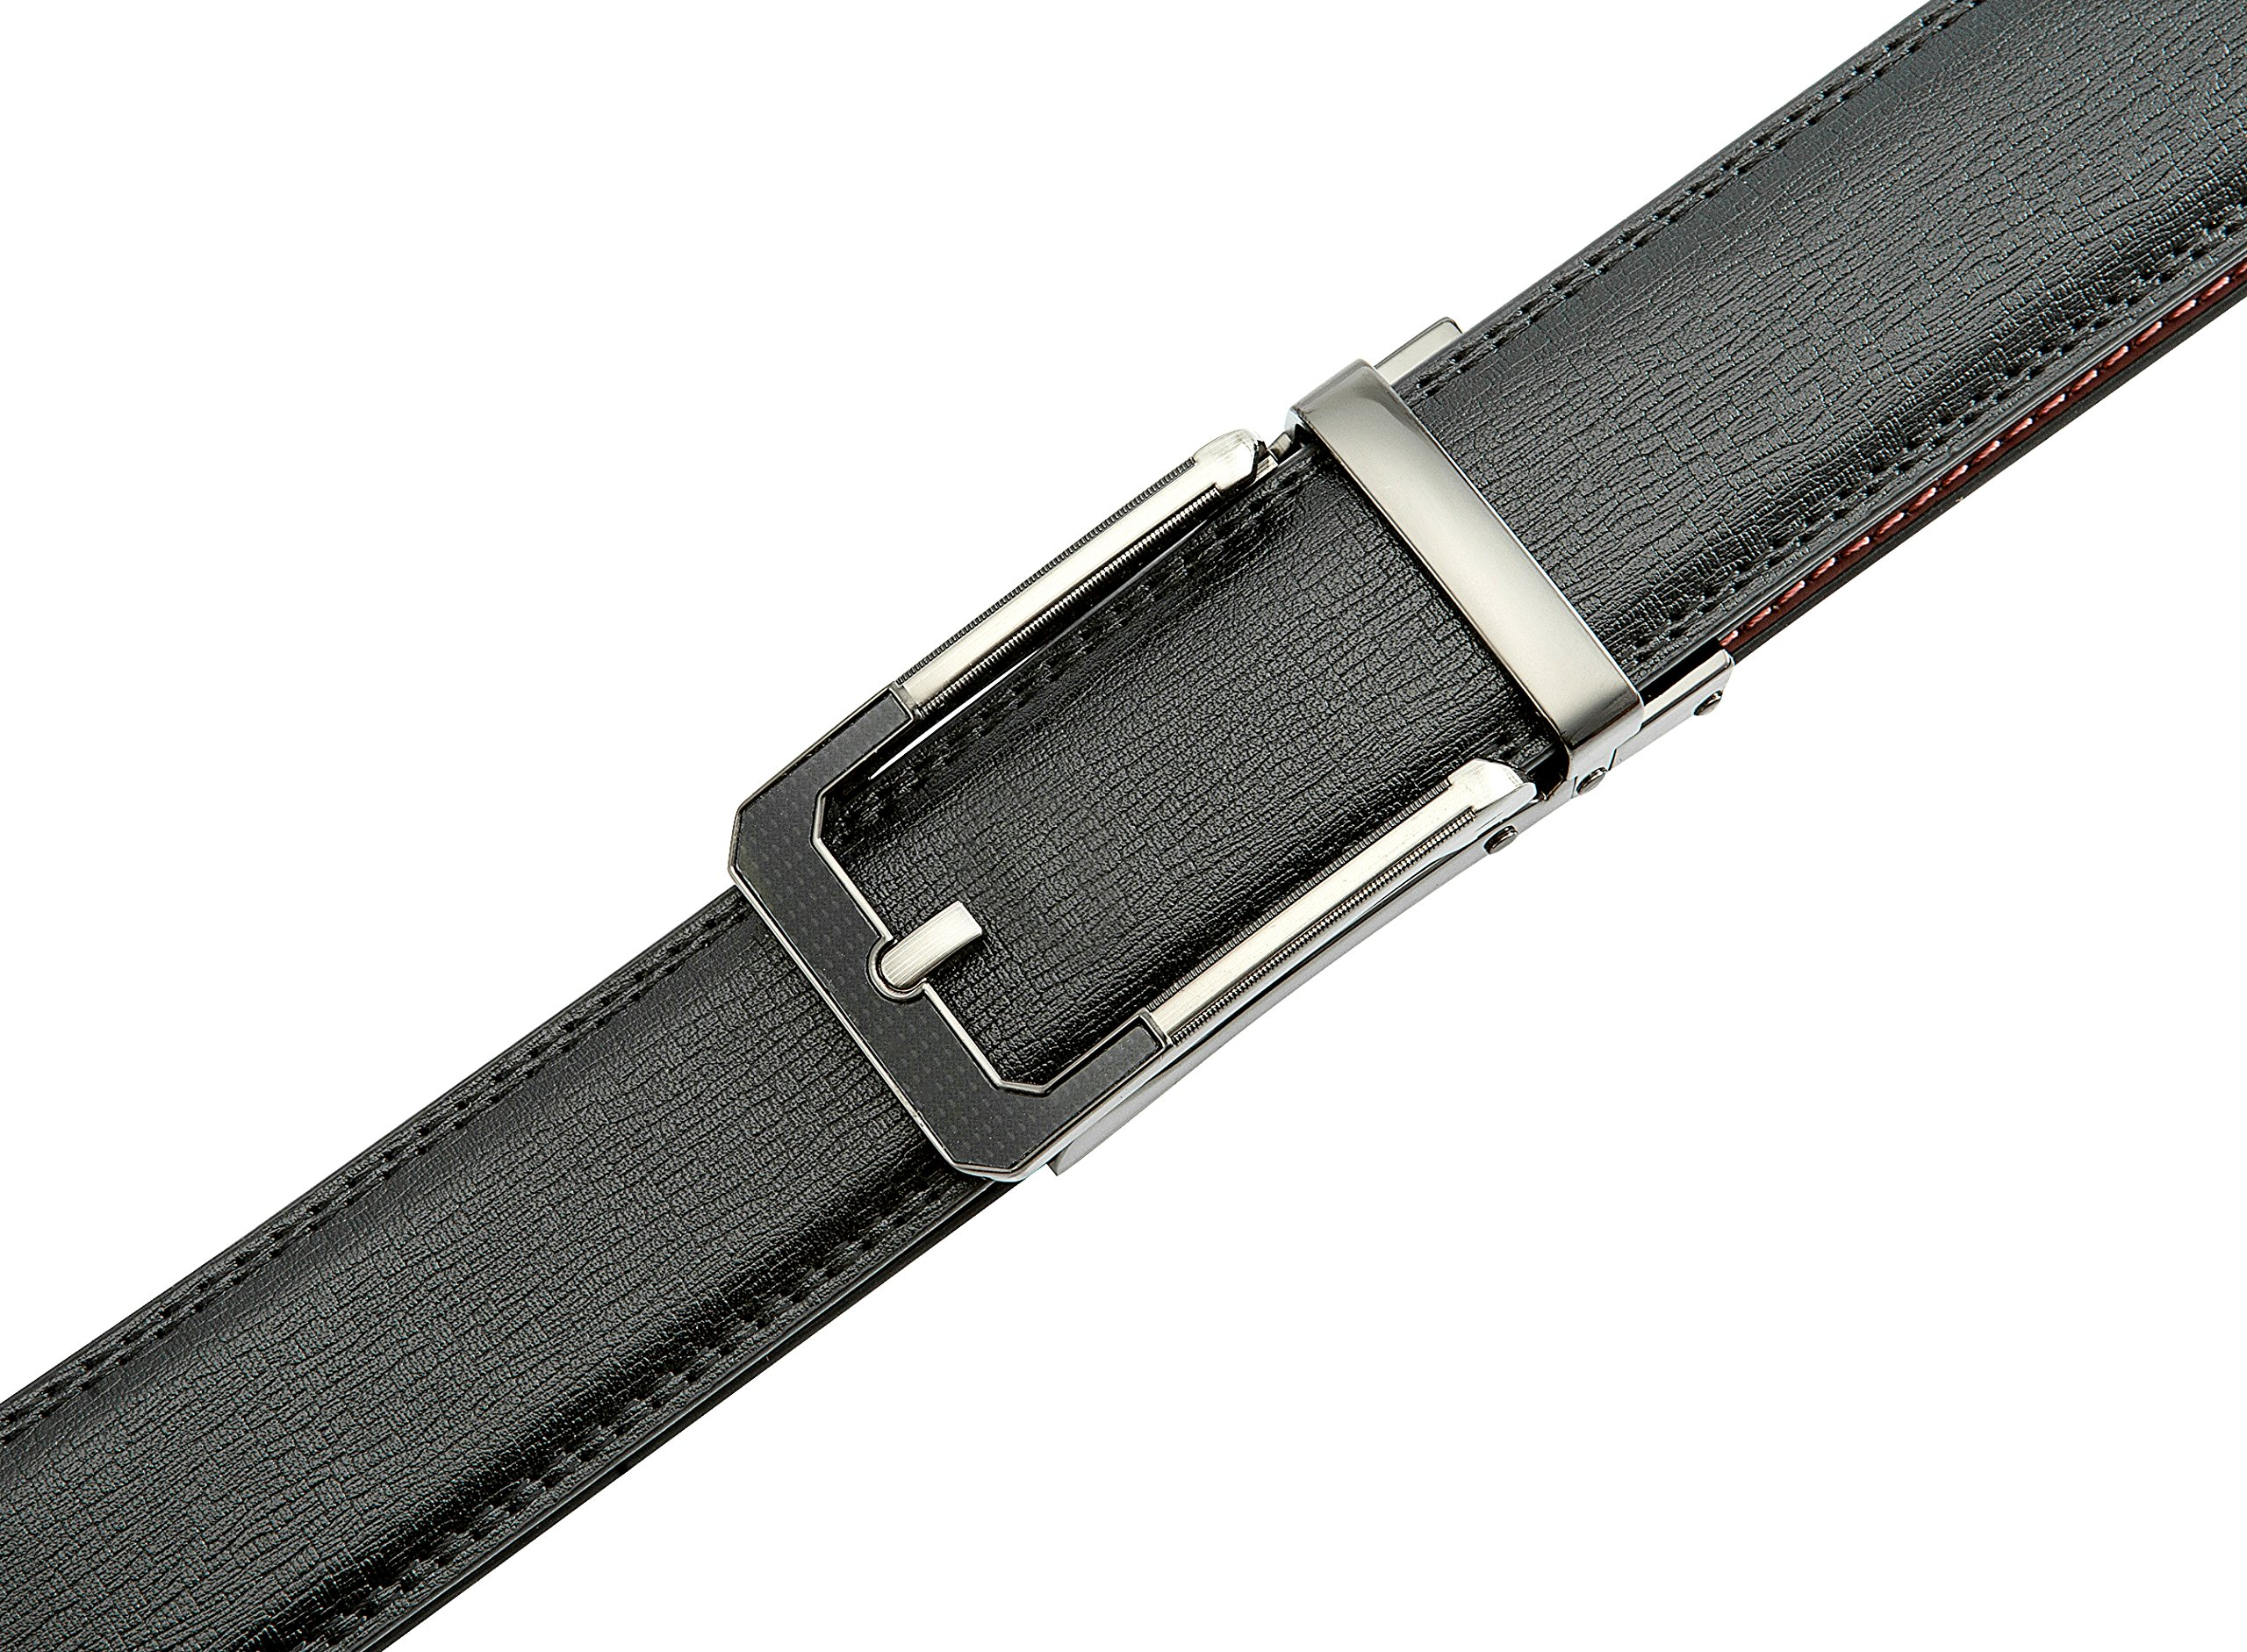 Men's Black Ratchet Belt - Black and Silver Open Style - by J. Dapper by J. Dapper (Image #5)